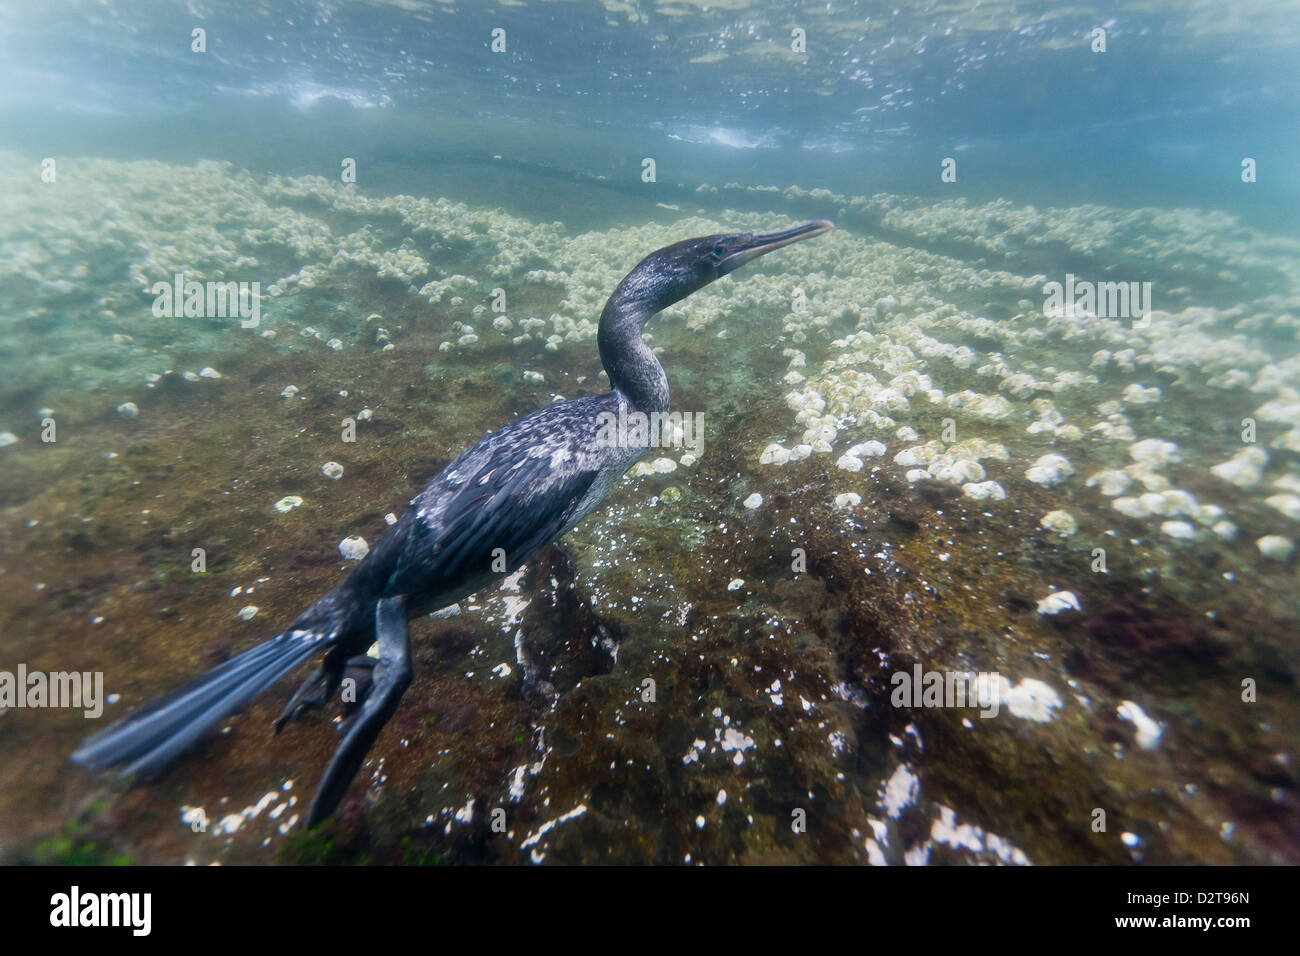 Flightless cormorant (Nannopterum harrisi) hunting underwater, Tagus Cove, Isabela Island, Galapagos Islands, Ecuador Stock Photo